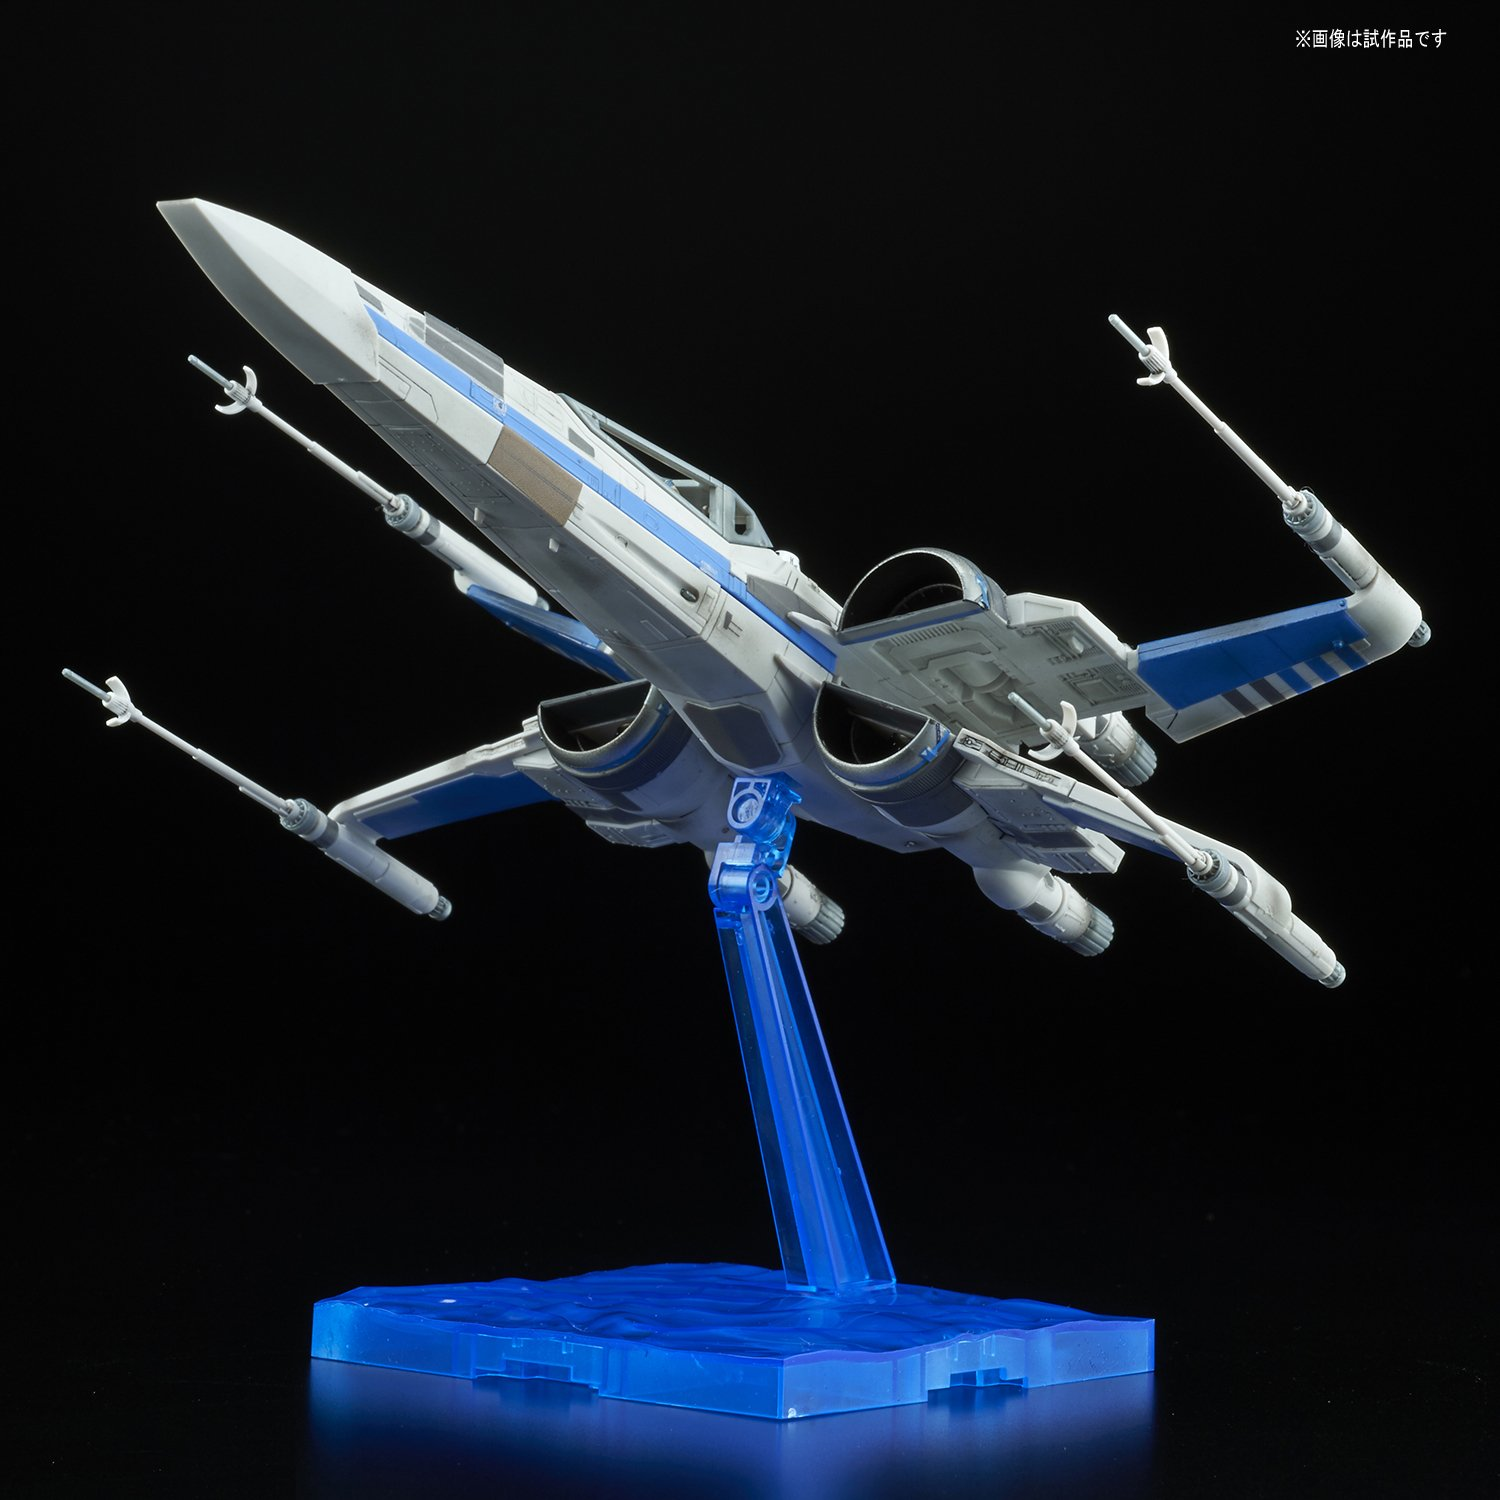 The Last Jedi Bandai 1//72 X Wing Fighter RESISTANCE BLUE Company Specification Star Wars Episode 8